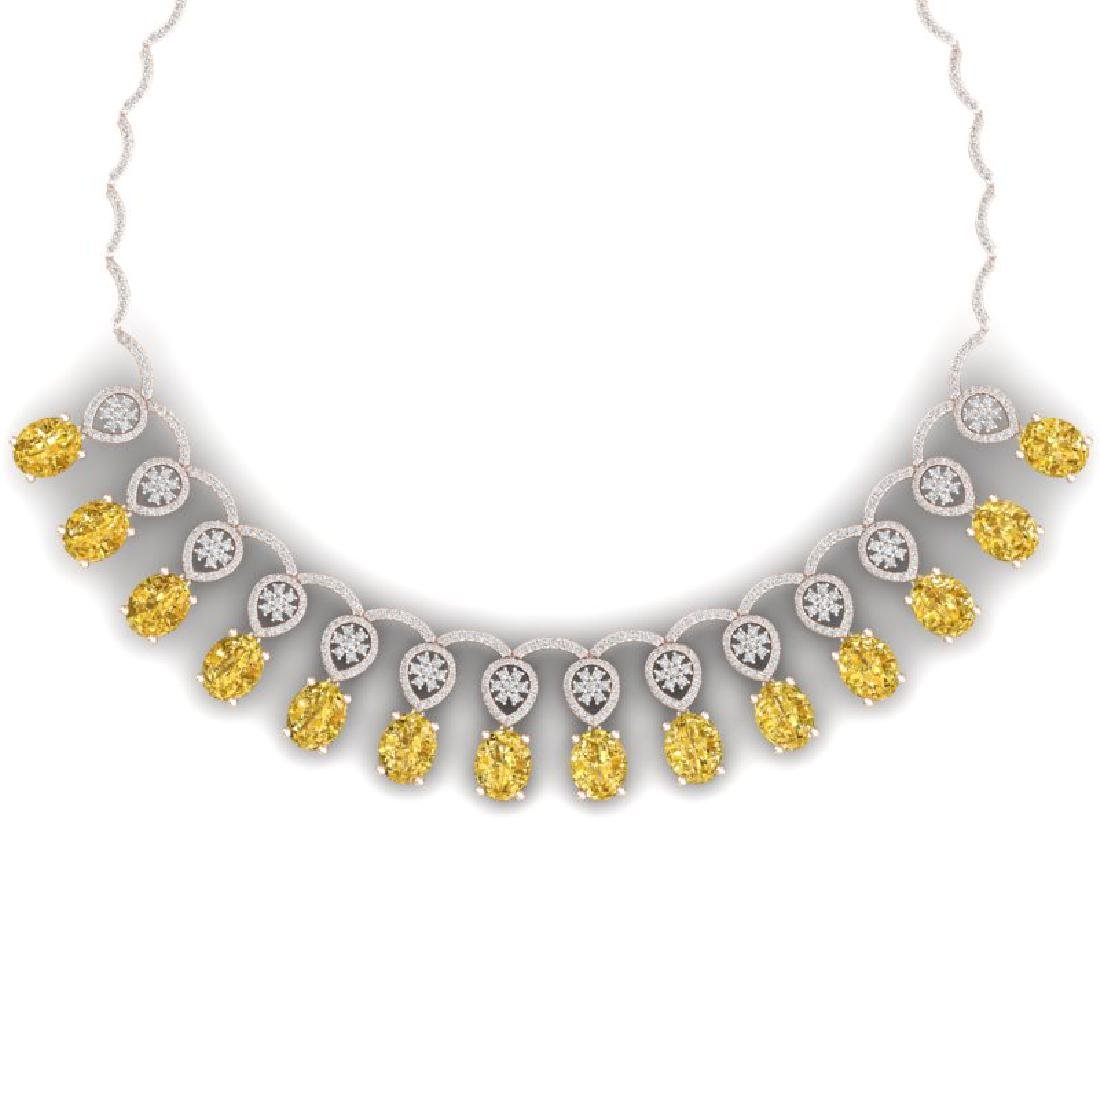 51.57 CTW Royalty Canary Citrine & VS Diamond Necklace